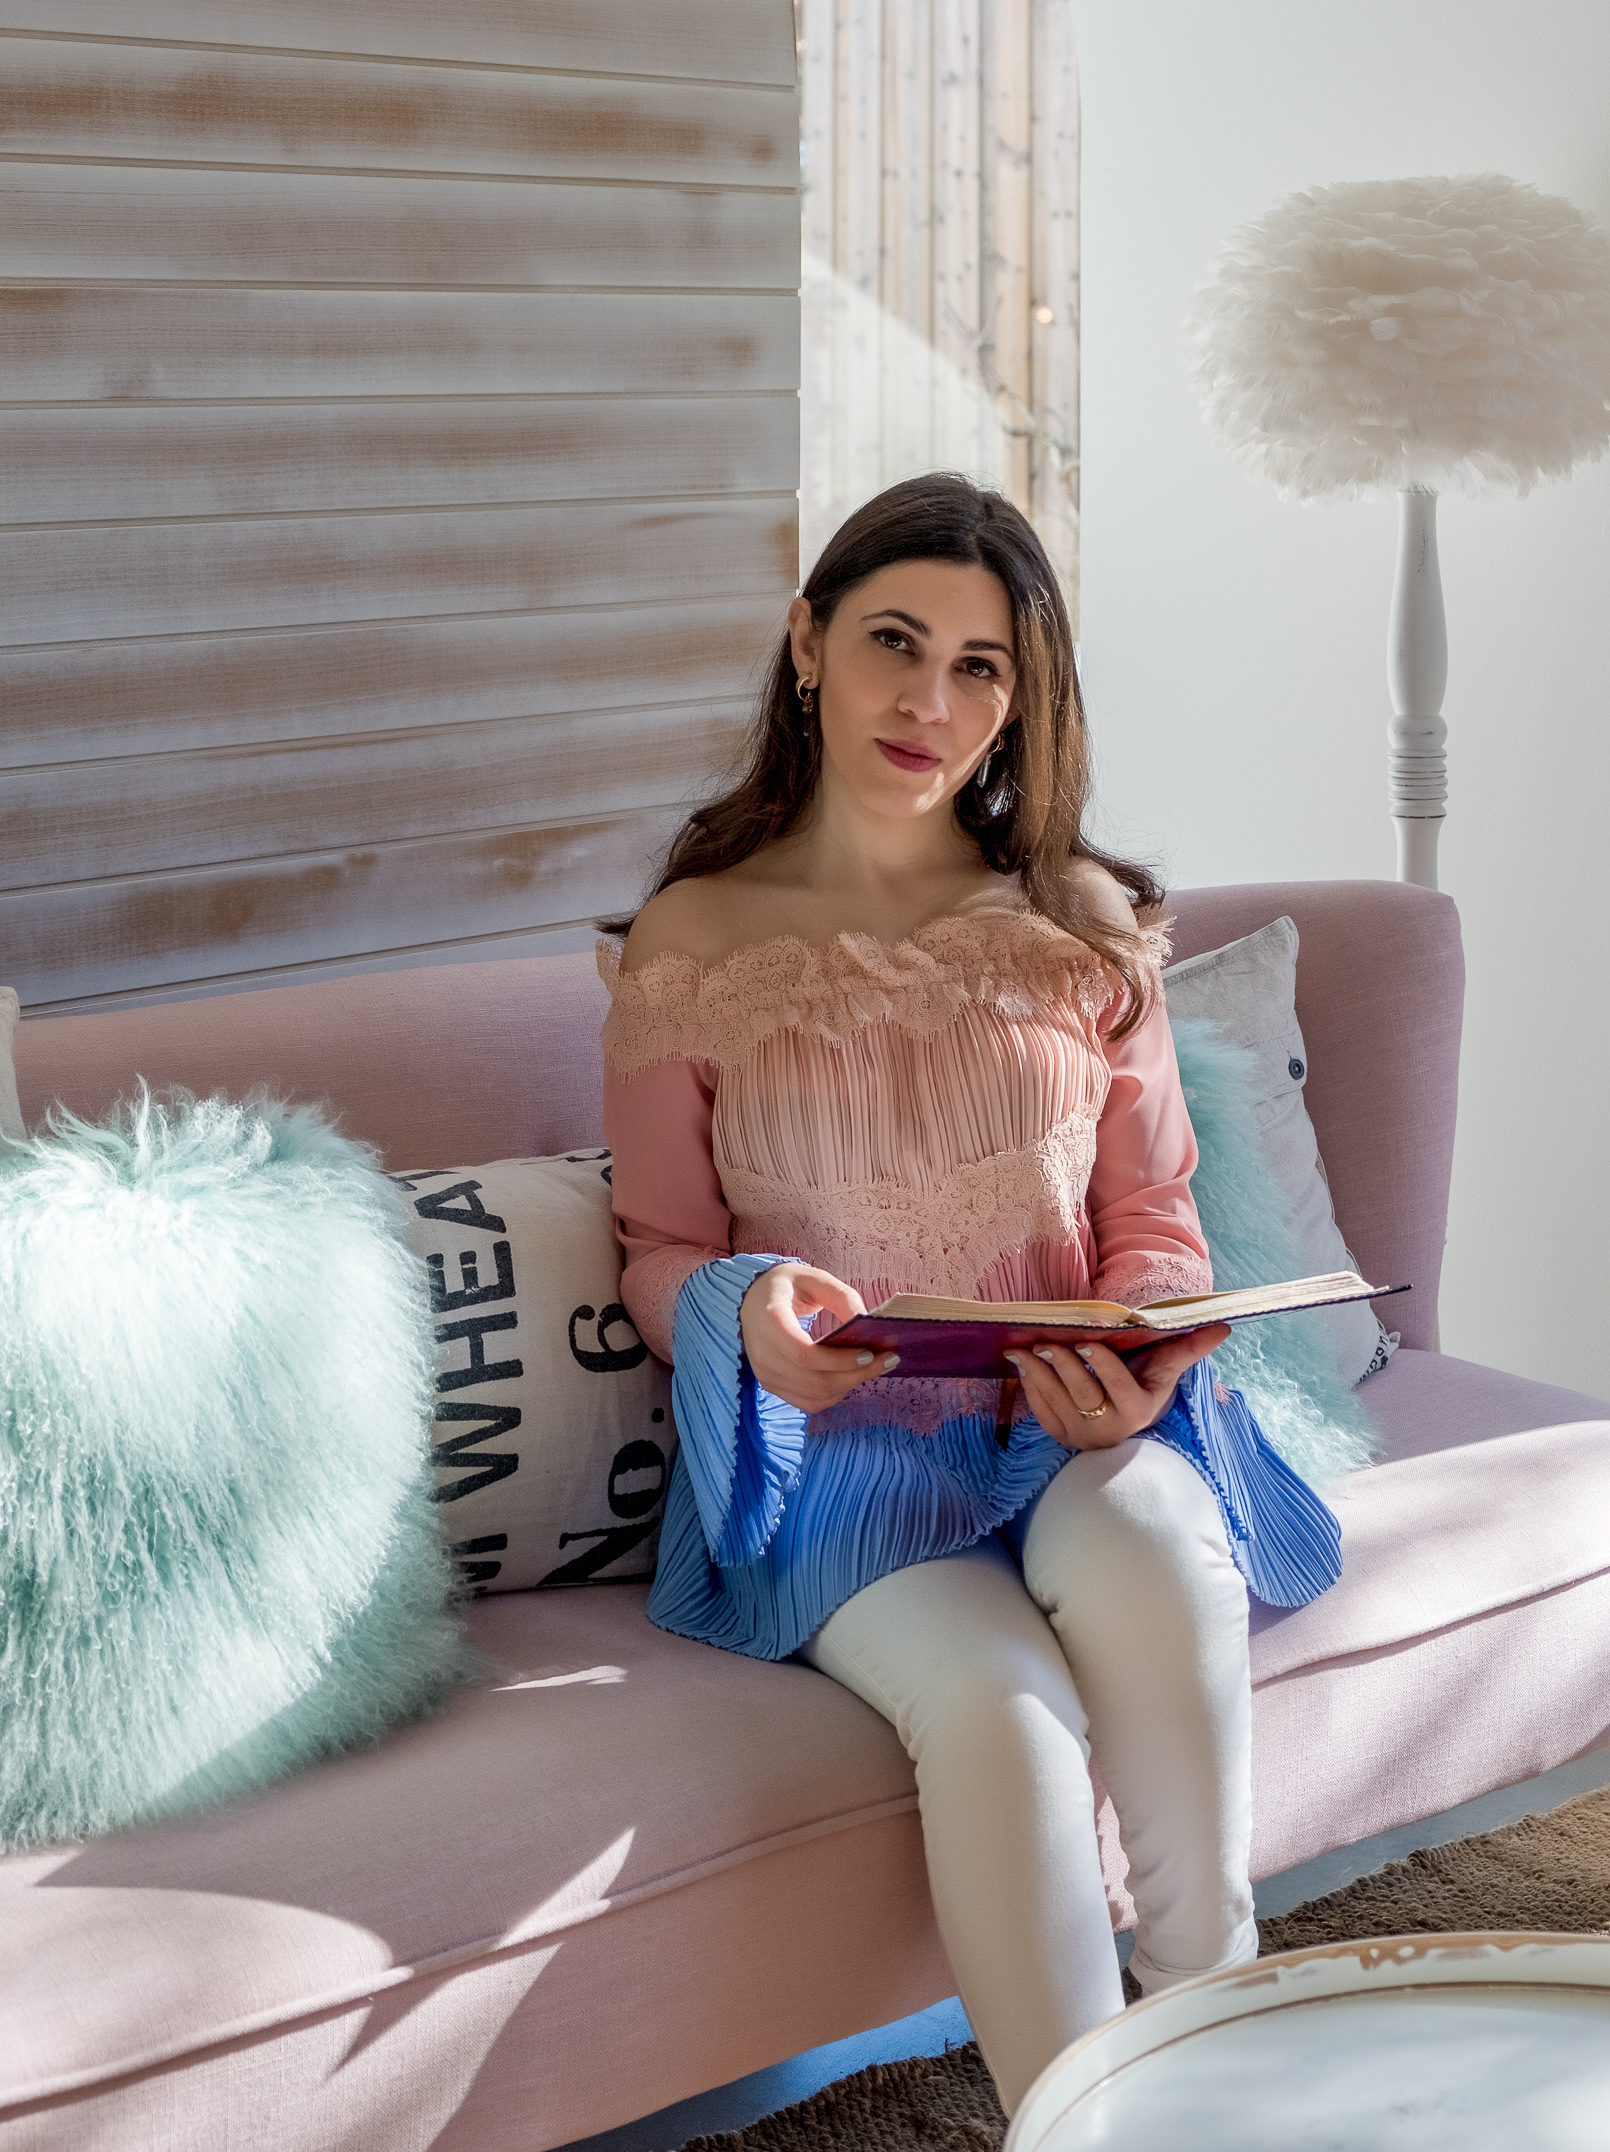 Le Fashionaire luz houses hotel decor lamp sofa pink cushion green uterque baby blue pale pink blouse lace 9267 EN luz houses hotel decor lamp sofa pink cushion green uterque baby blue pale pink blouse lace 9267 EN